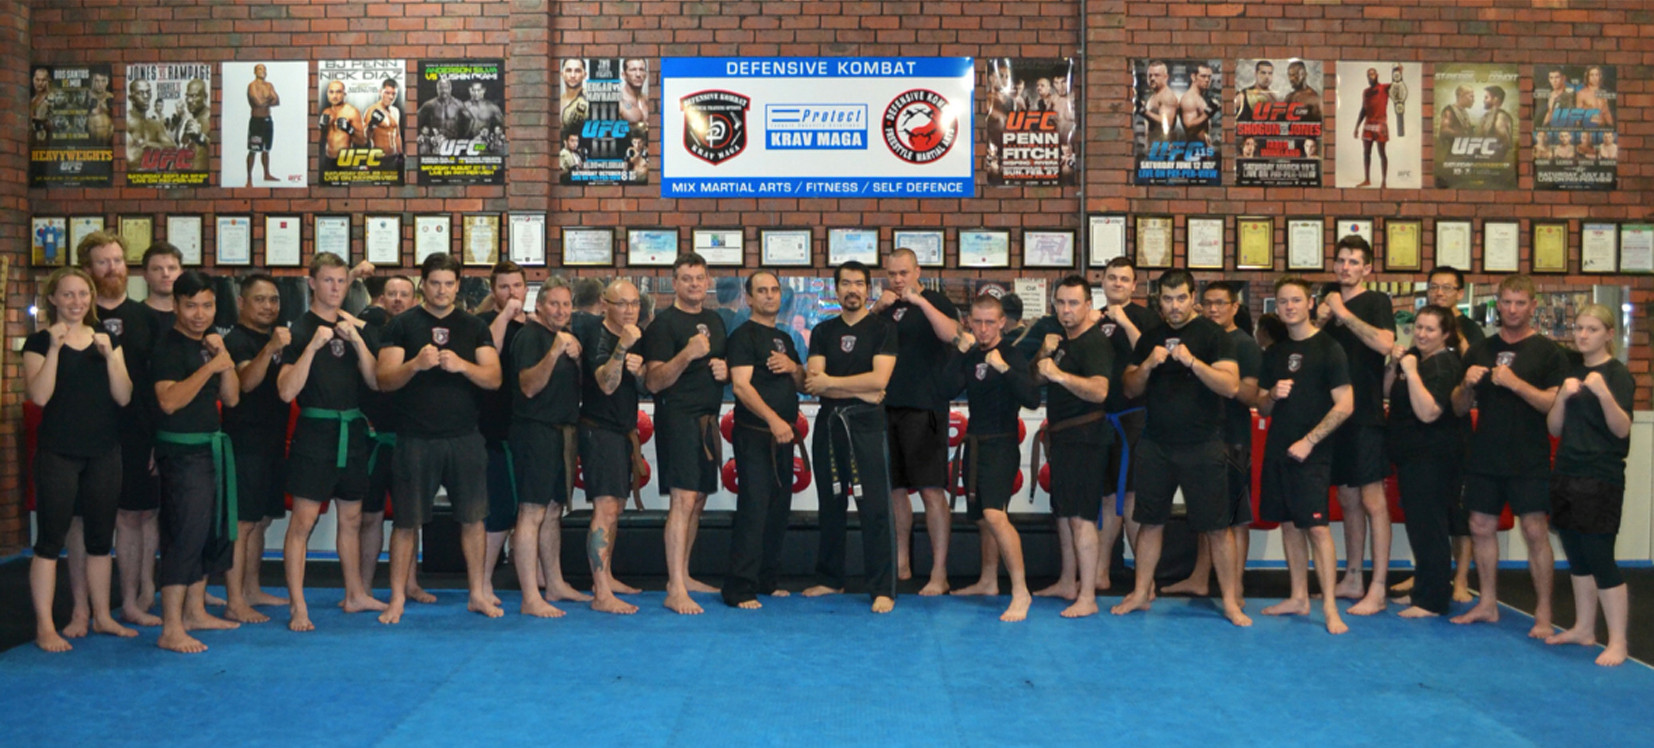 1. Krav Maga Group -December 2015.jpg